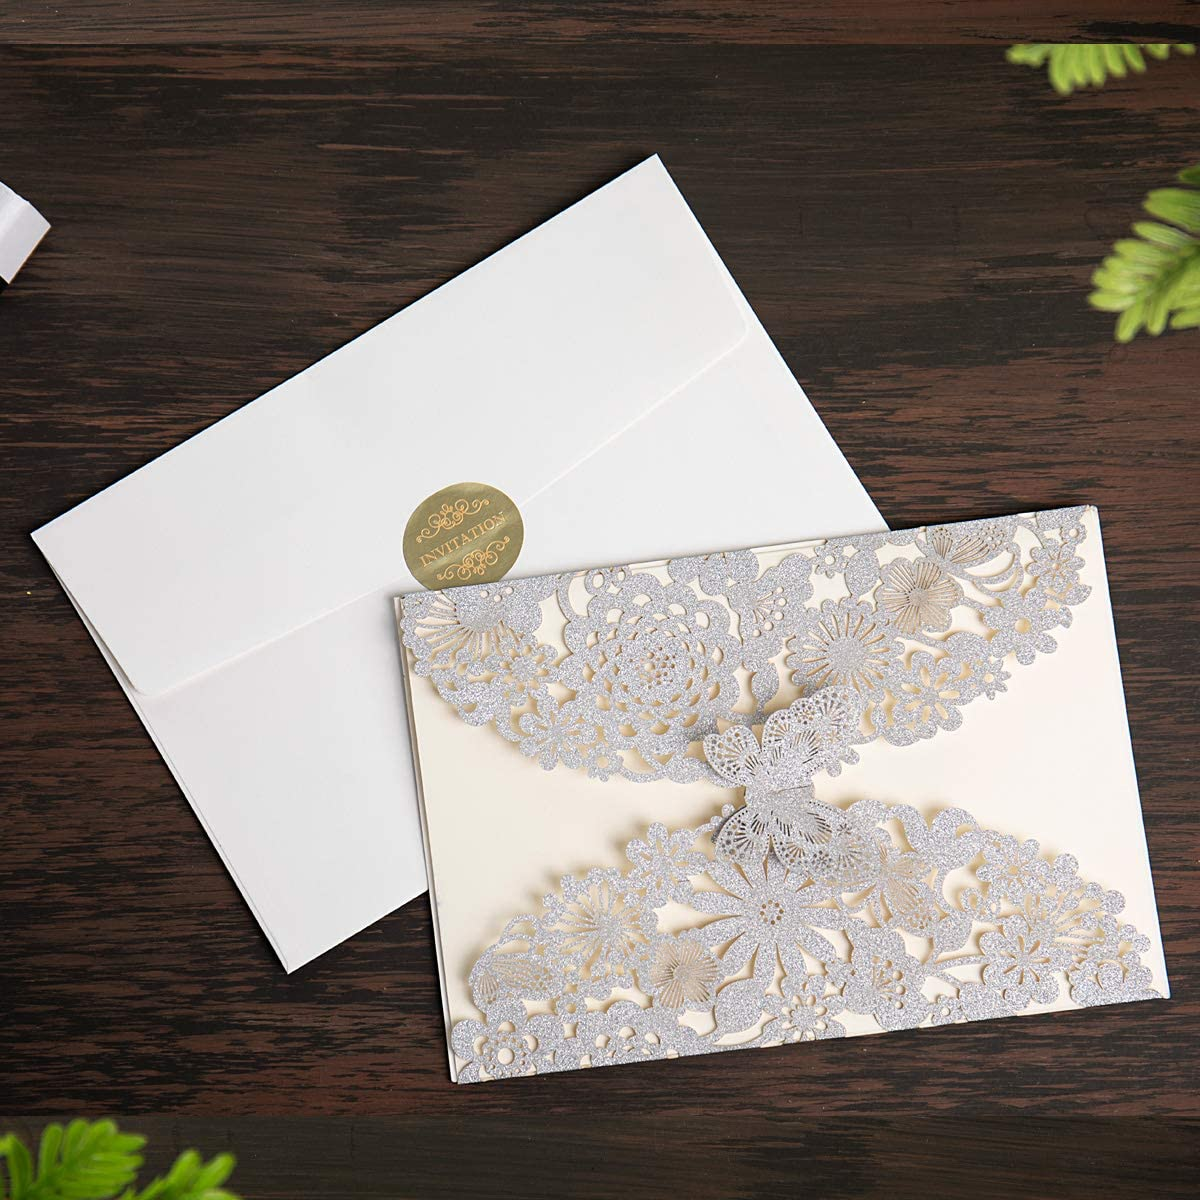 Amazon.com: Hosmsua 20x Laser Cut Lace Flora Wedding Invitation Cards with  Butterfly and Envelopes for Bridal Shower Engagement Quinceañera Graduation  Party (Silver Glitter): Health & Personal Care